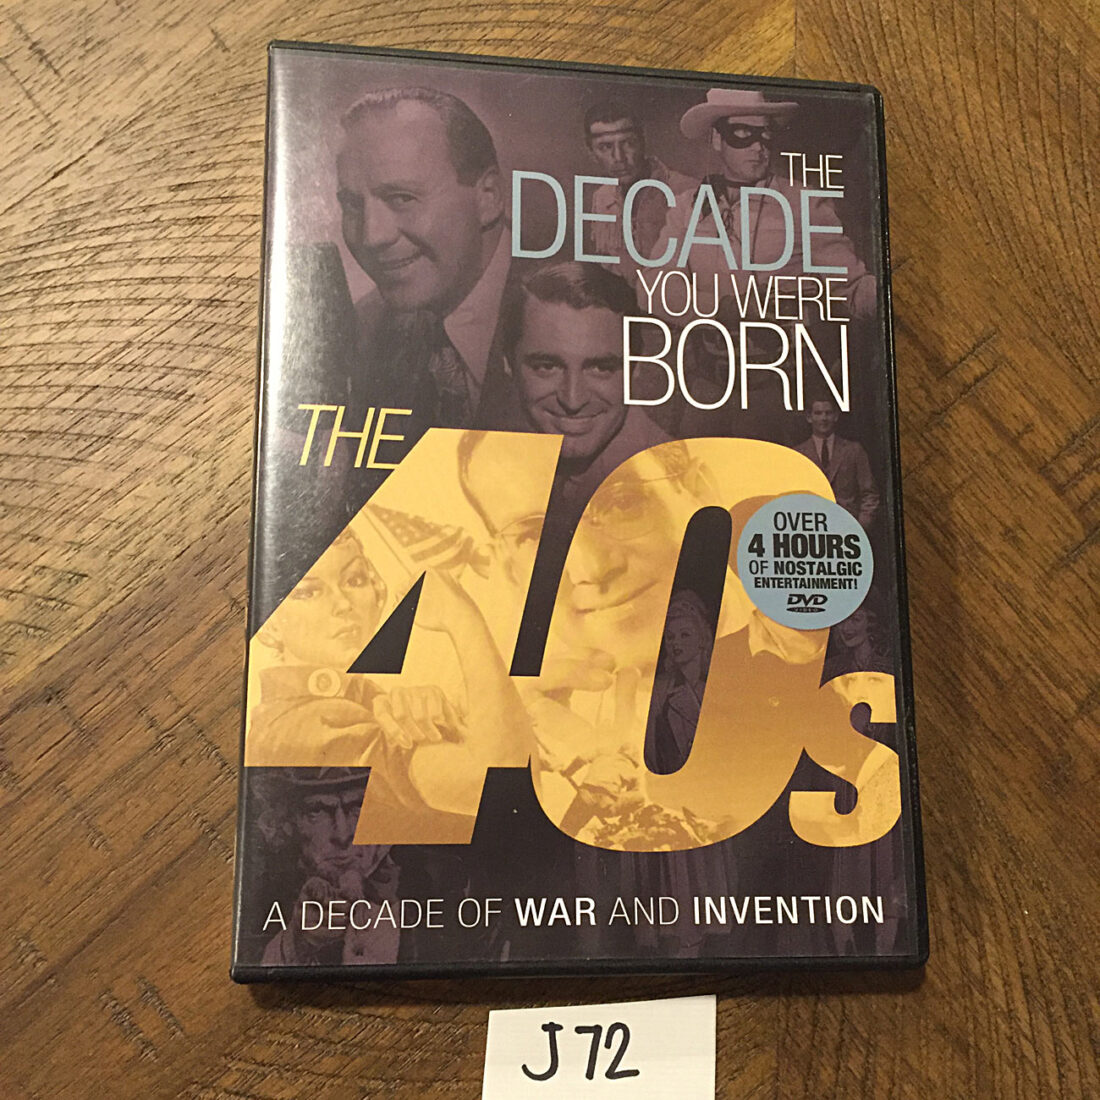 The Decade You Were Born: 1940s DVD Edition with Interactive Timeline (2012) [J72]